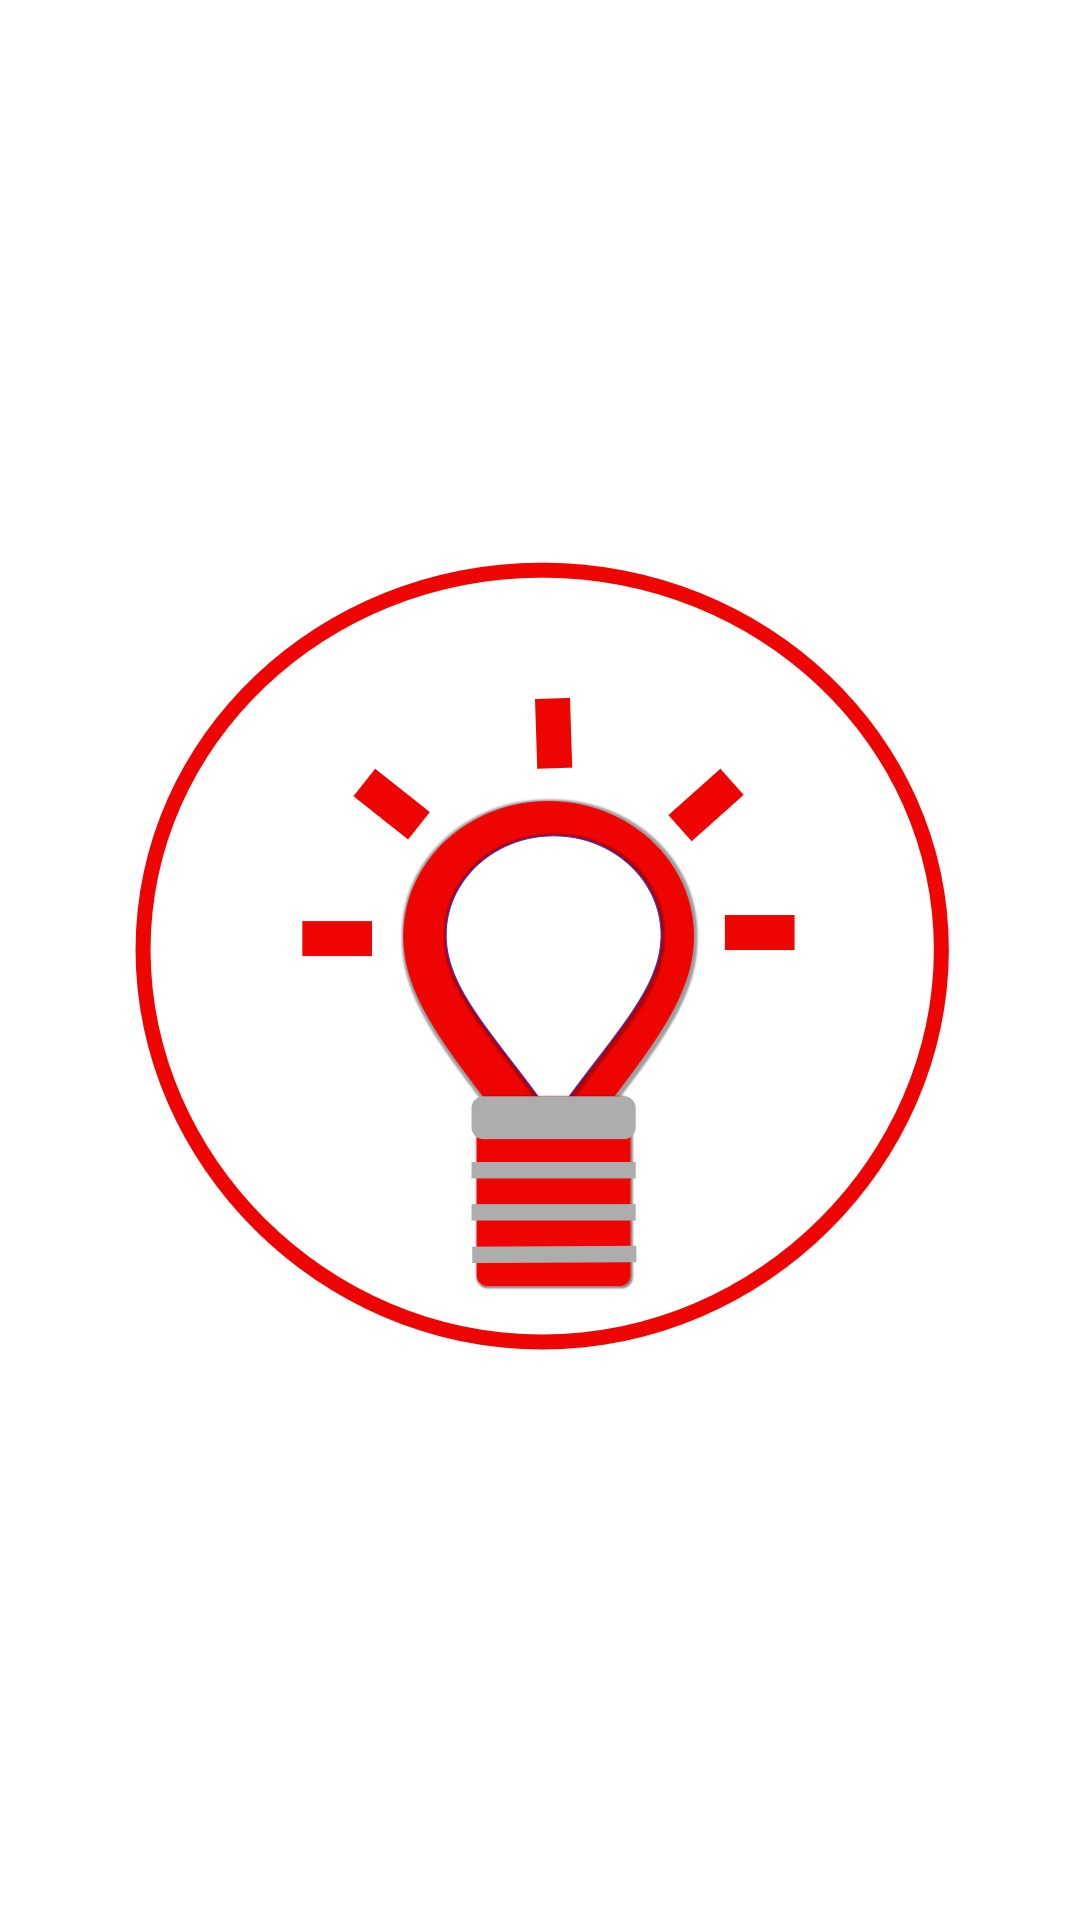 Instagram-cover-lightbulb-red-white-lotnotes.jpg